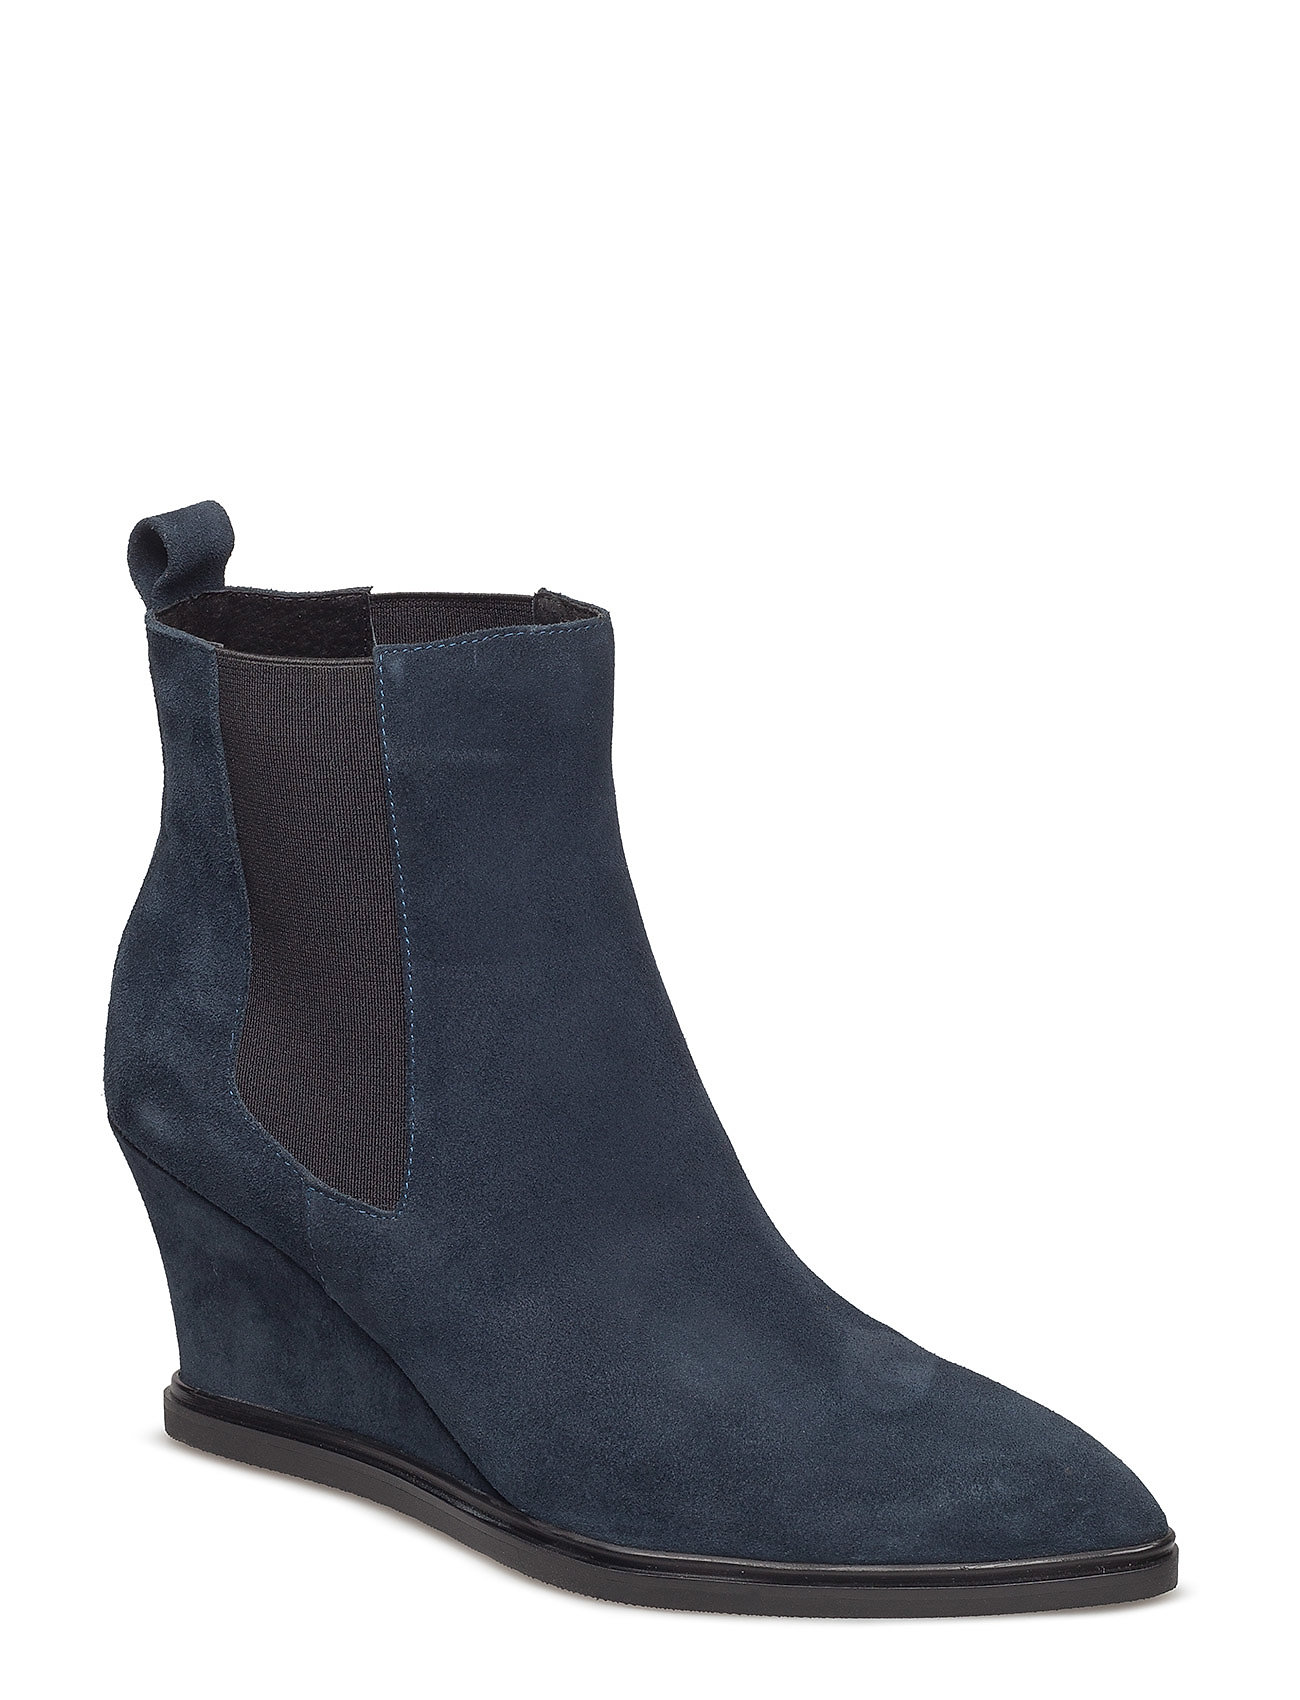 Image of Alea Chelsea S Shoes Boots Ankle Boots Ankle Boot - Heel Blå Shoe The Bear (3452120003)